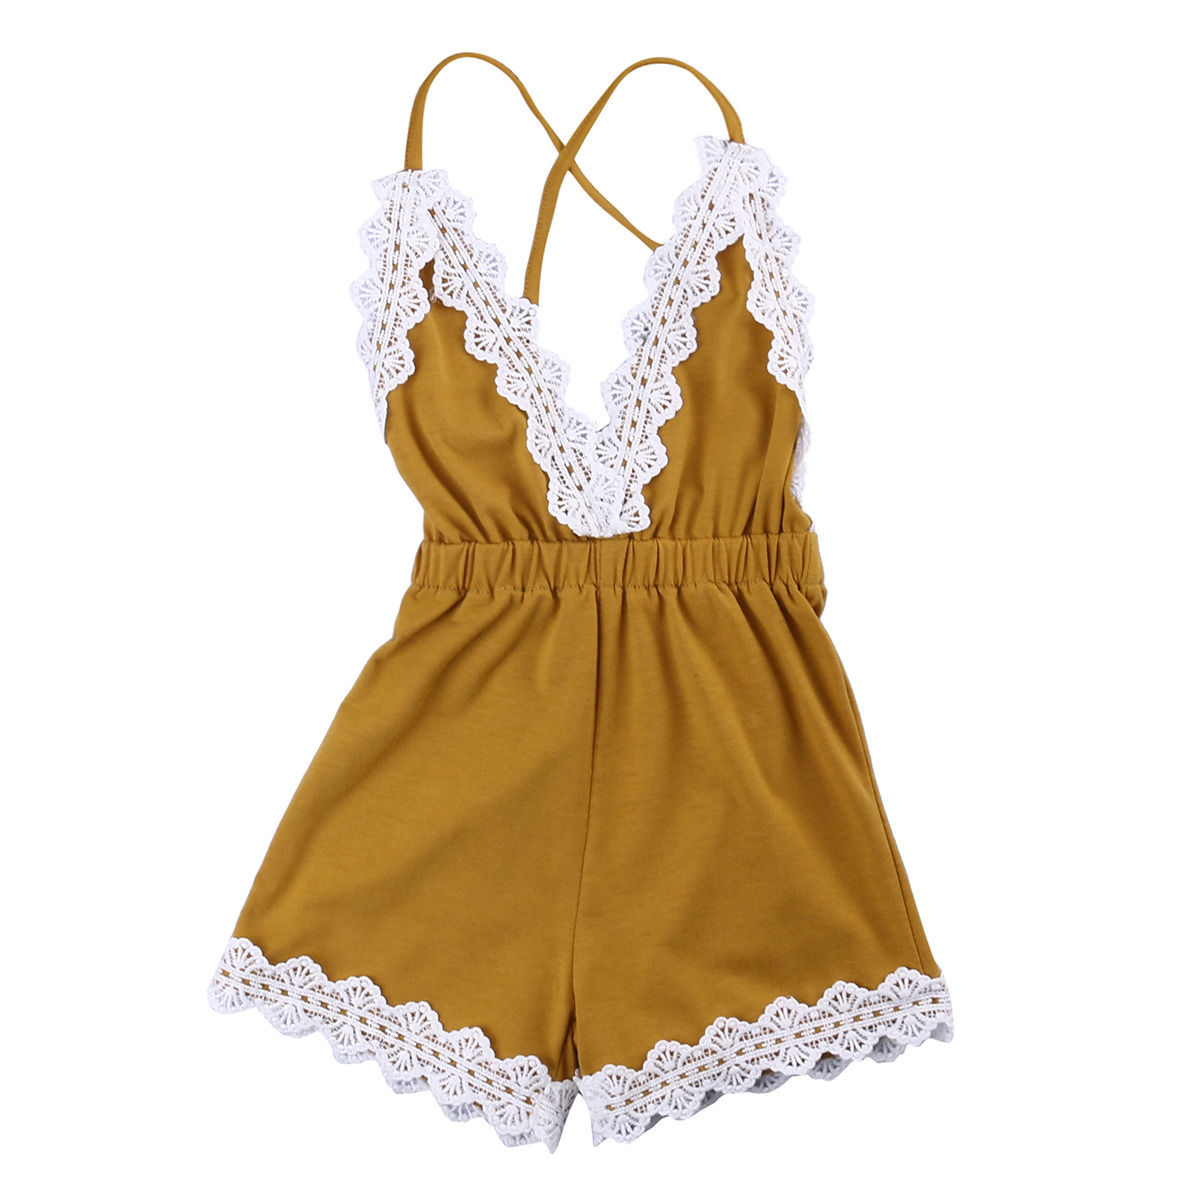 2017 New Halter Infant Baby Toddler Girls Lace Romper Jumpsuit Sunsuit Clothes 0-24M baby girl 1st birthday outfits short sleeve infant clothing sets lace romper dress headband shoe toddler tutu set baby s clothes